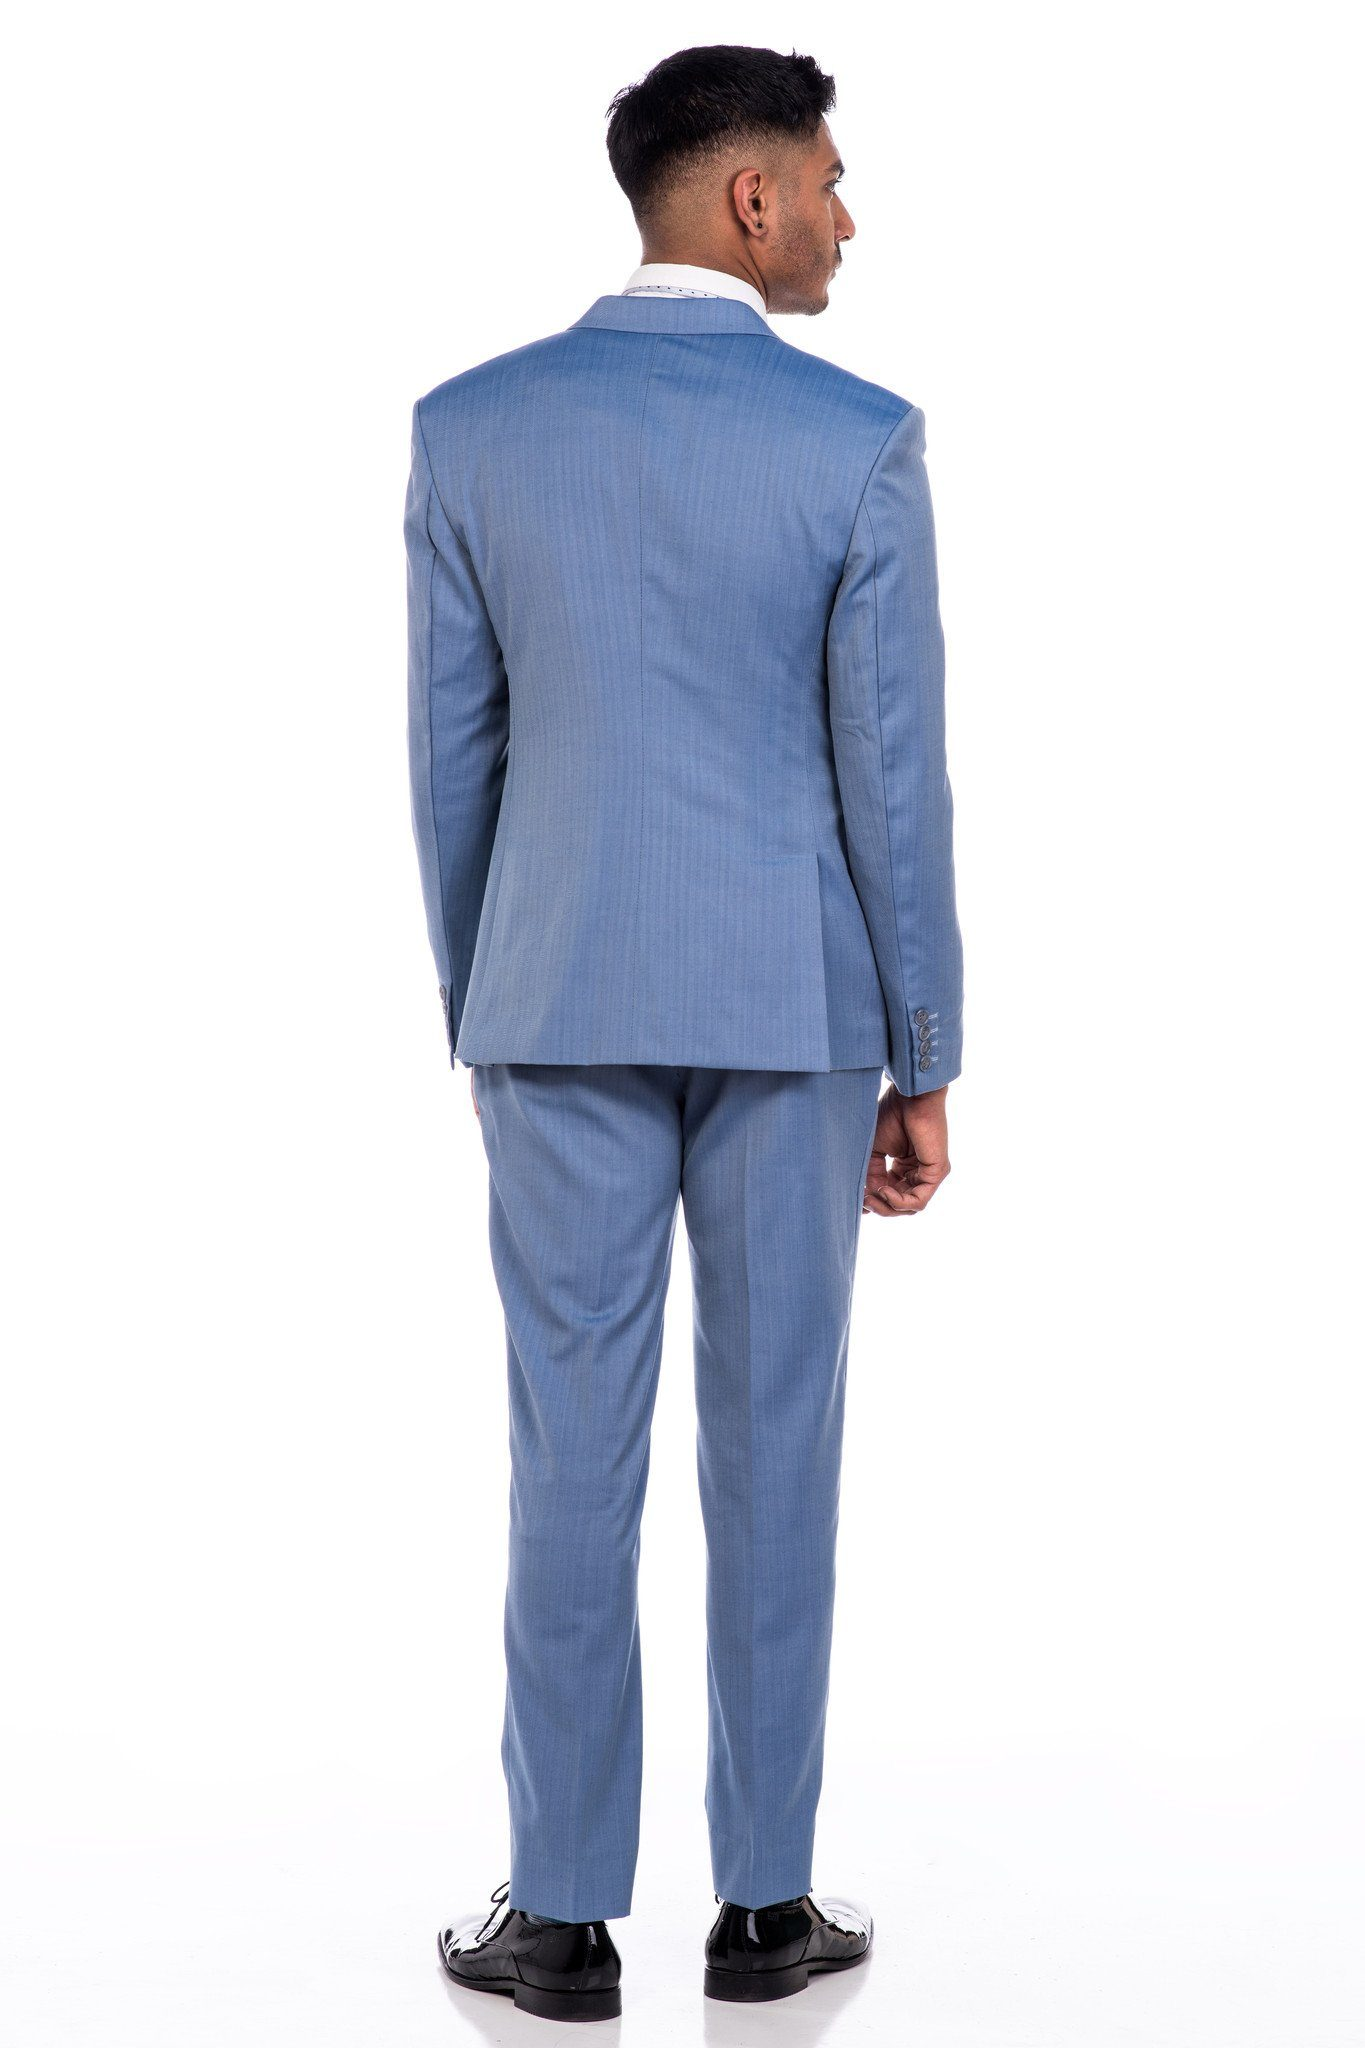 Suit - Sootz Cashmere Wool Sky Blue Suit